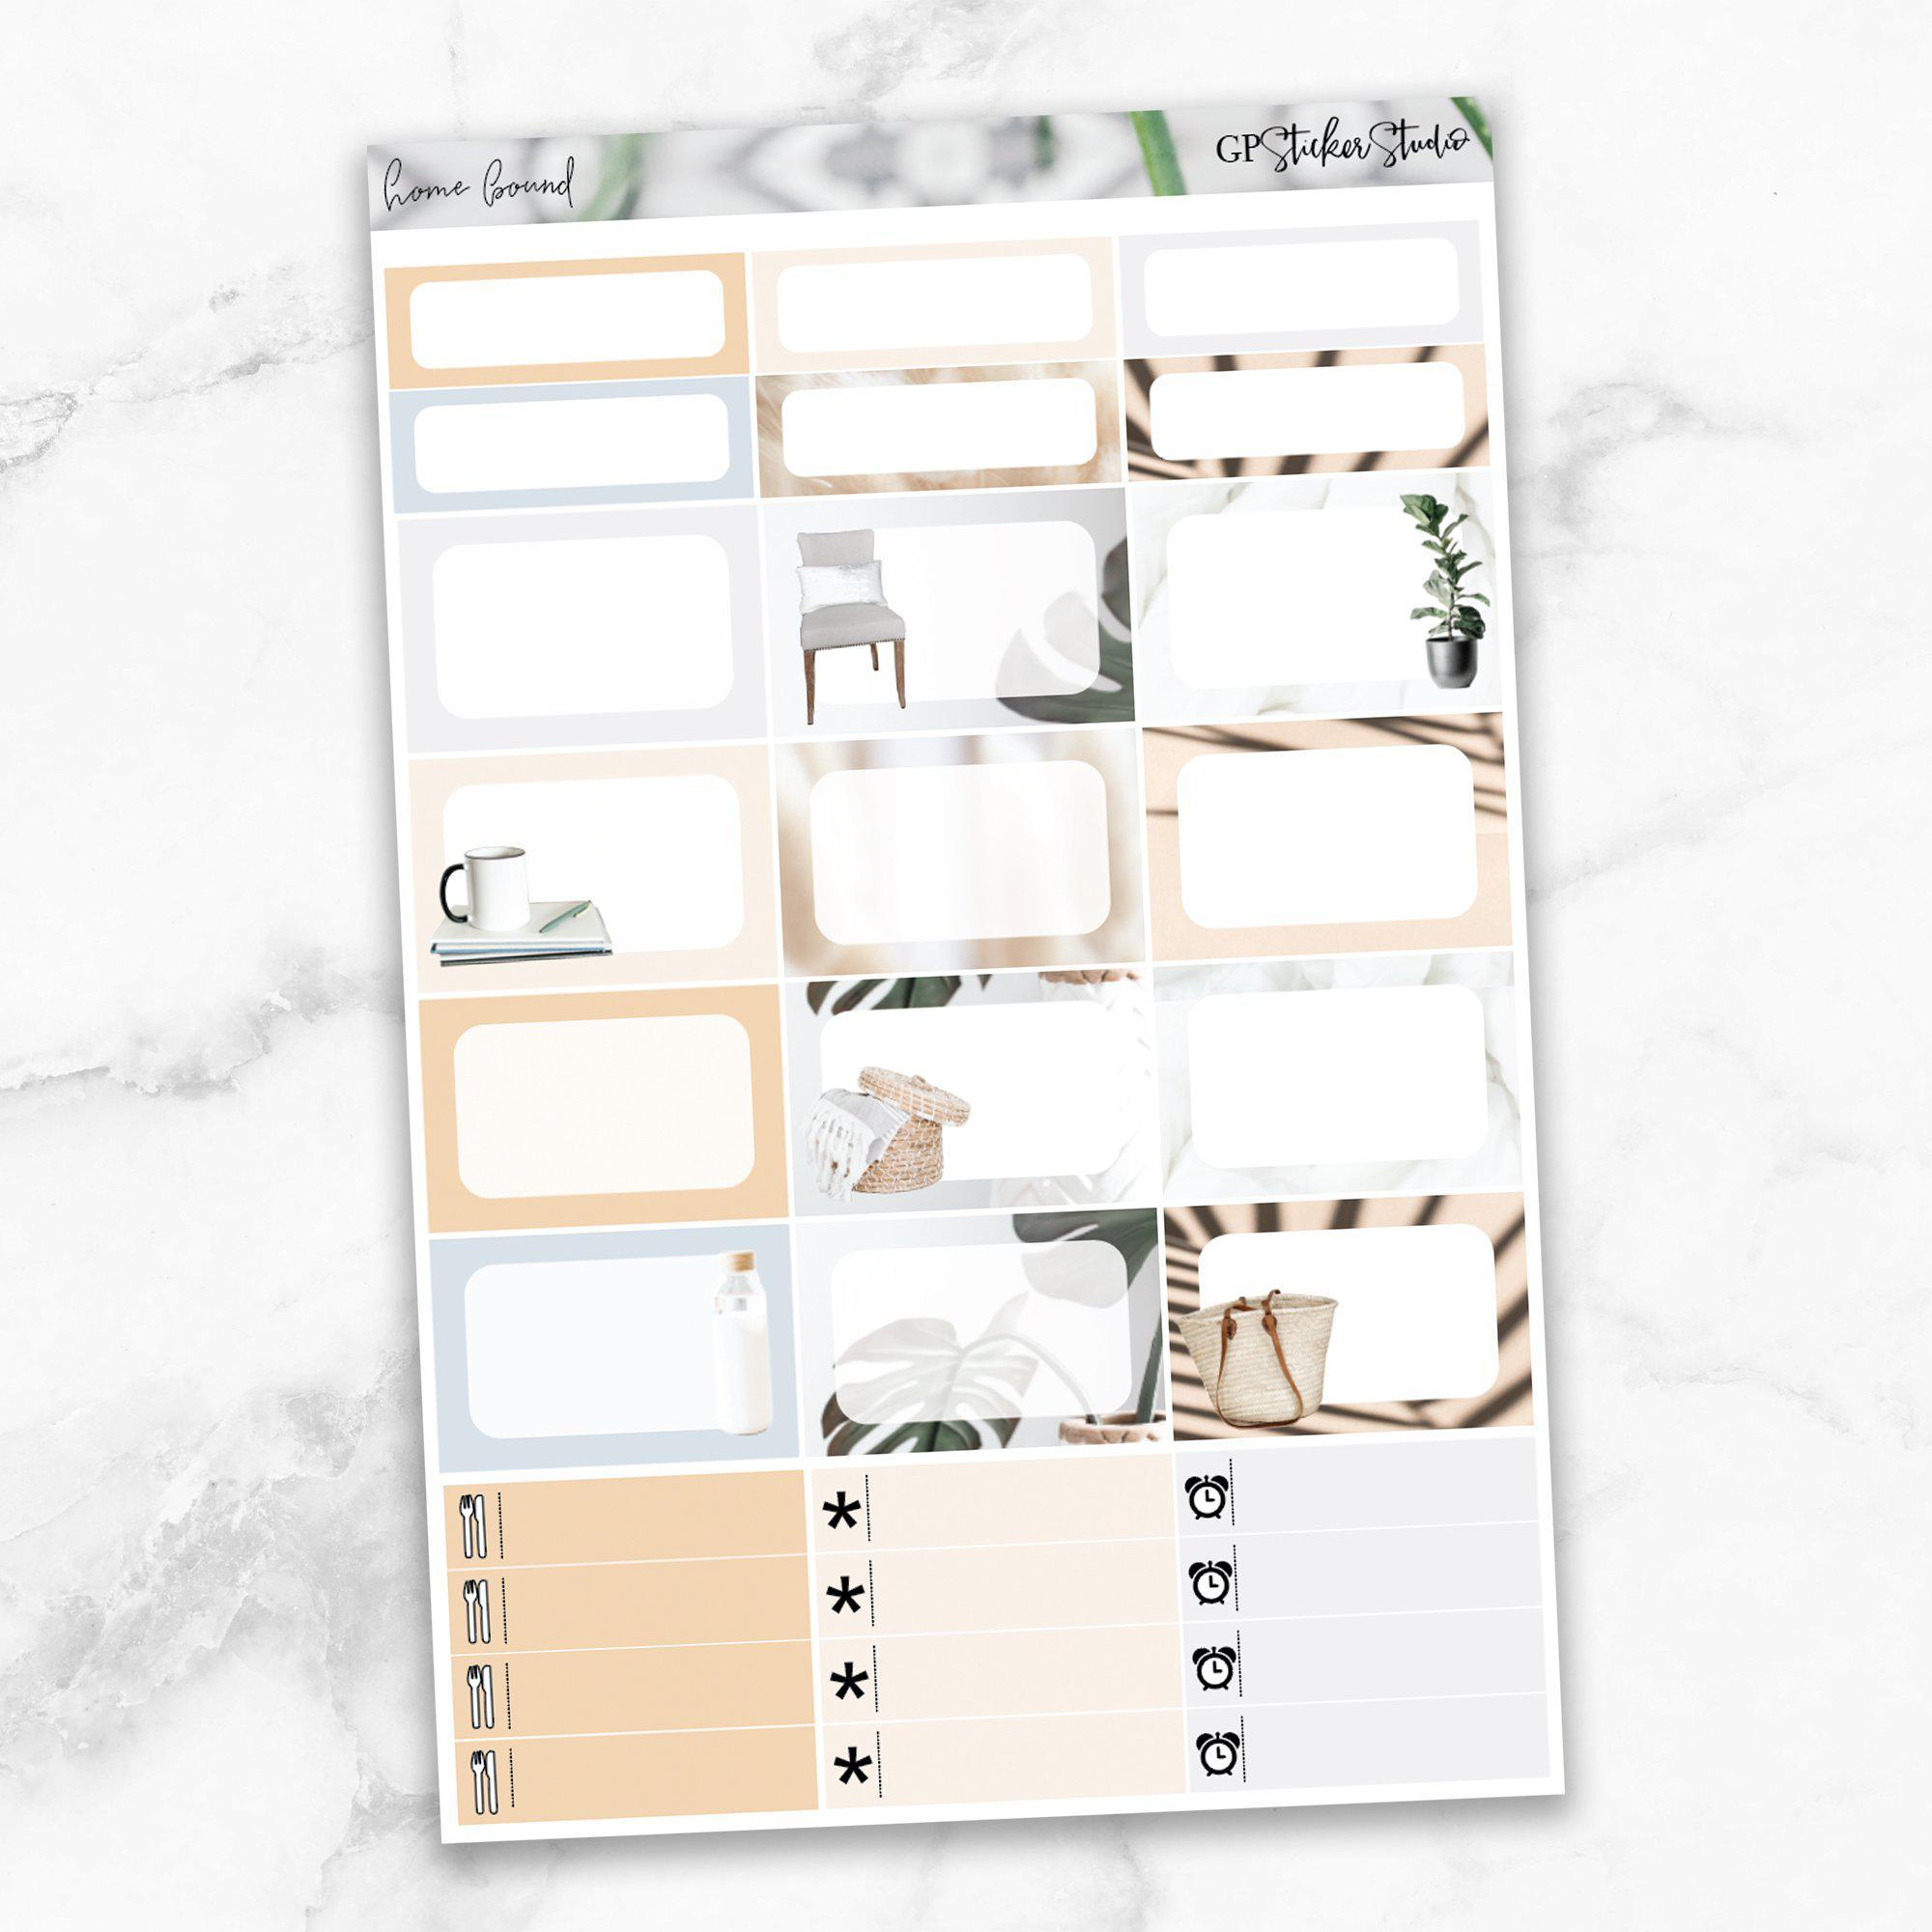 HOMEBOUND Half Boxes Planner Stickers-The GP Studio